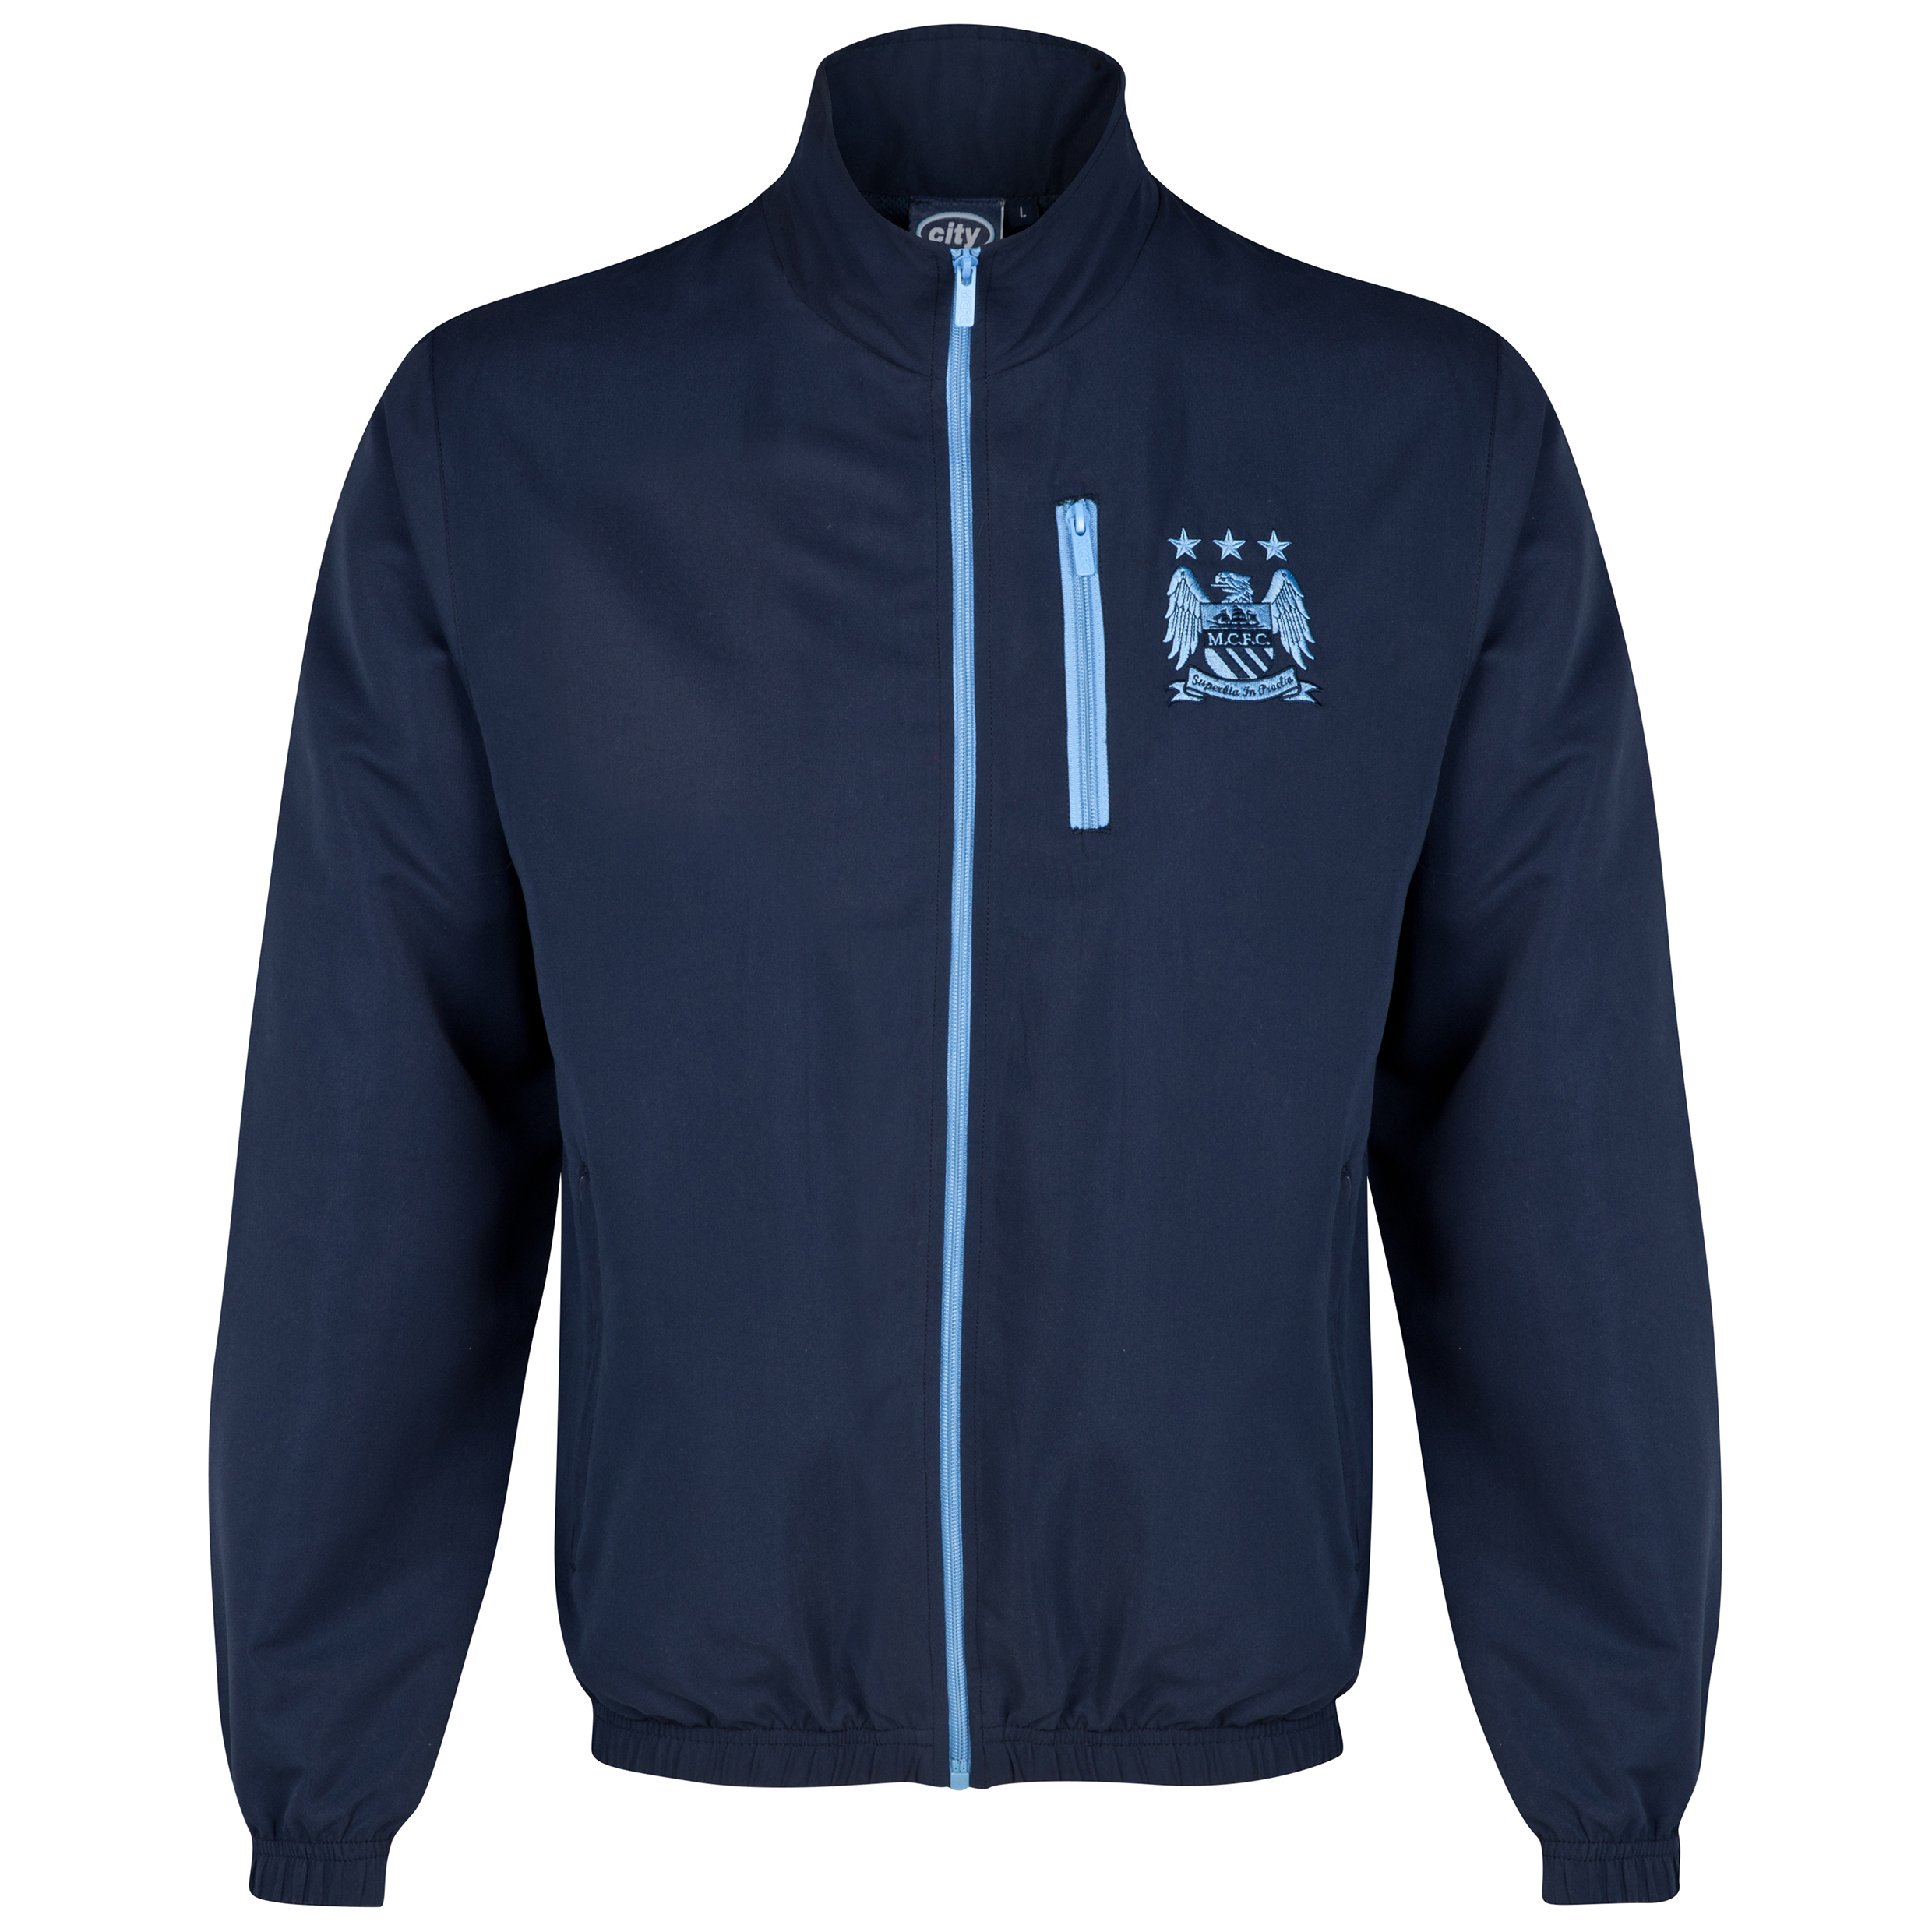 Manchester City Essential Track Jacket- Navy - Older Boys